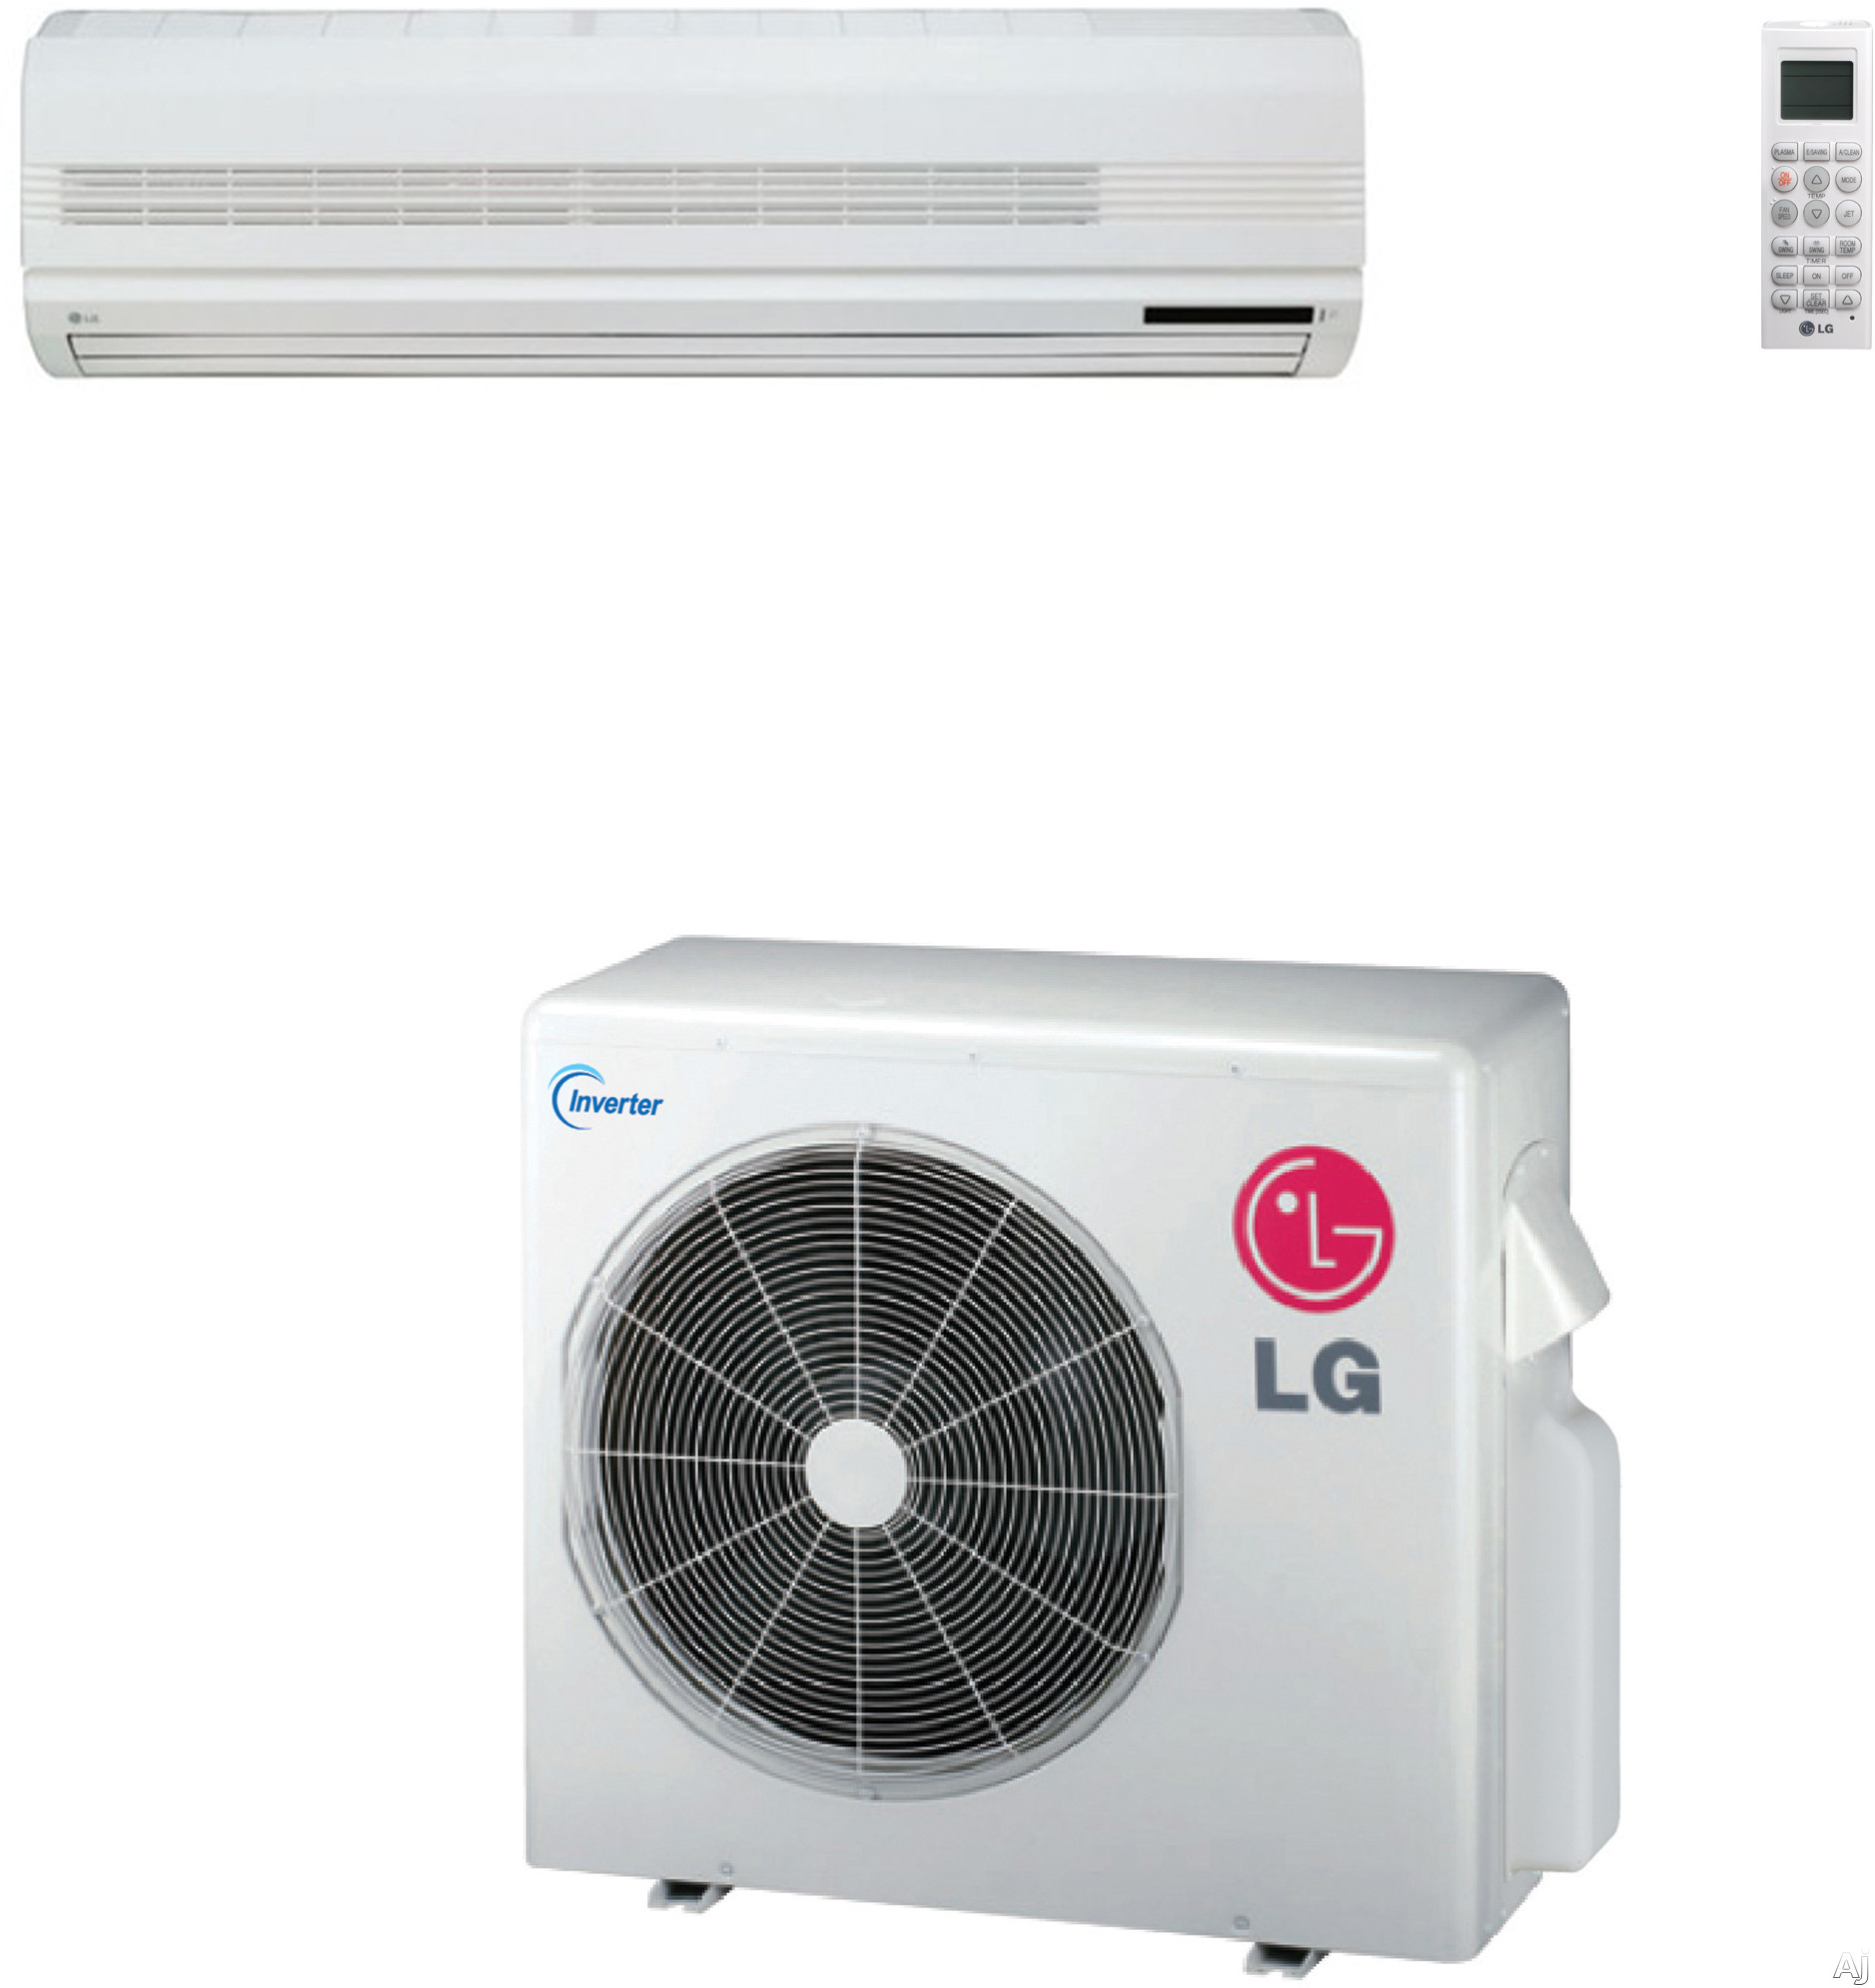 LG LS360HV3 33,000 BTU Single Zone Wall-Mount Ductless Split System with 35,200 BTU Heat Pump, 8.2 EER, Inverter and R-410A Refrigerant (LSN360HV3 Indoor/LSU360HV3 Outdoor) LS360HV3